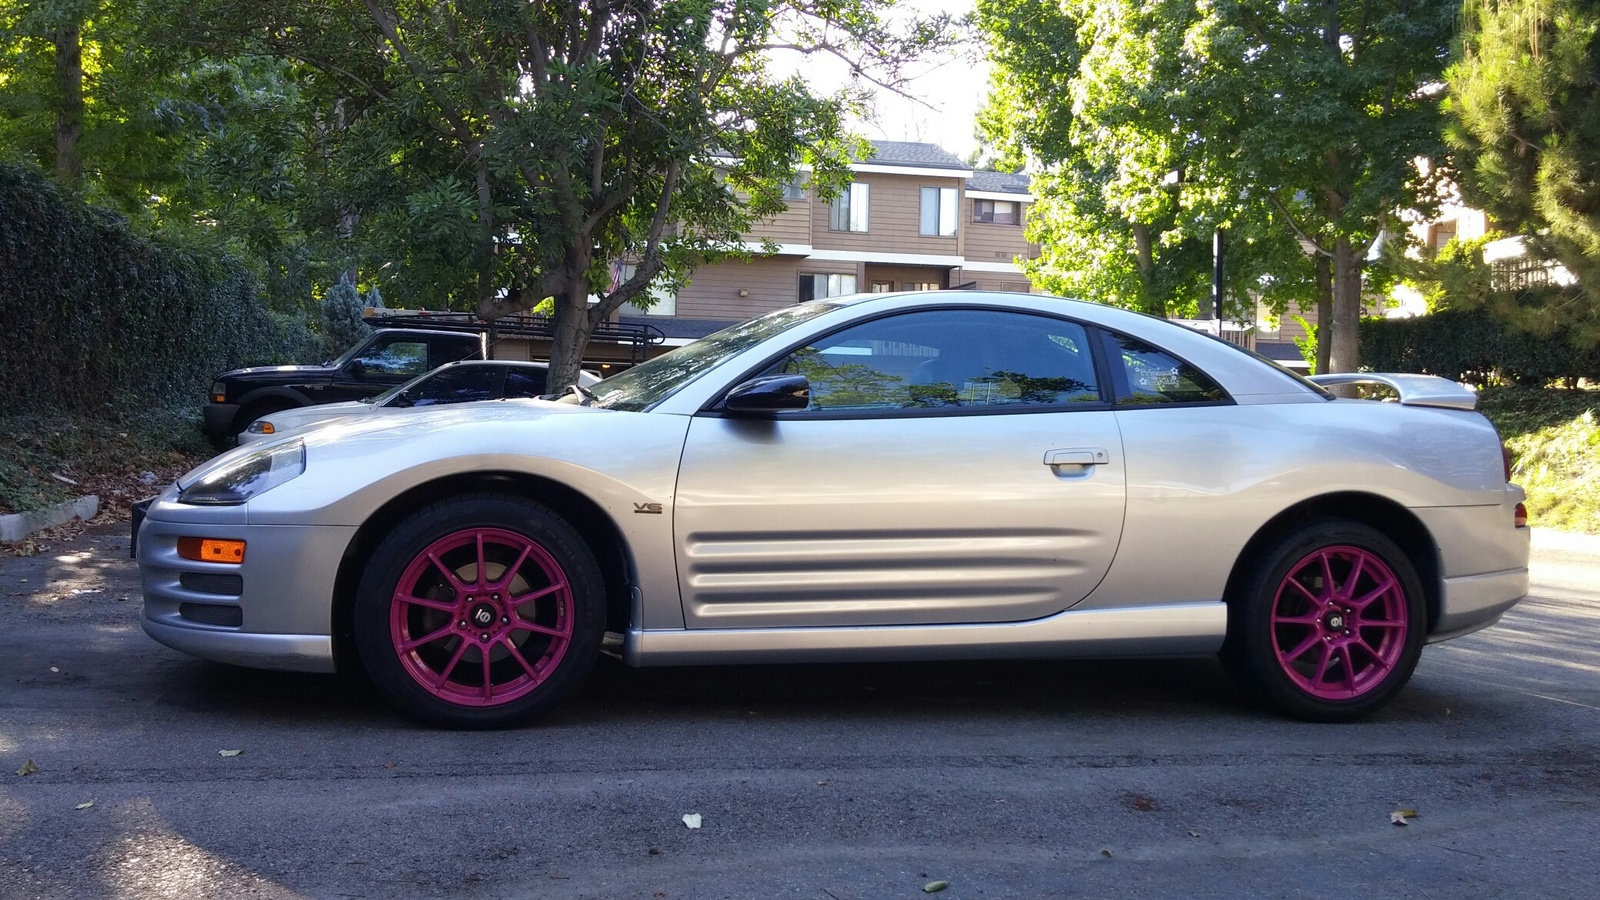 picture of 2001 mitsubishi eclipse gt exterior. Black Bedroom Furniture Sets. Home Design Ideas